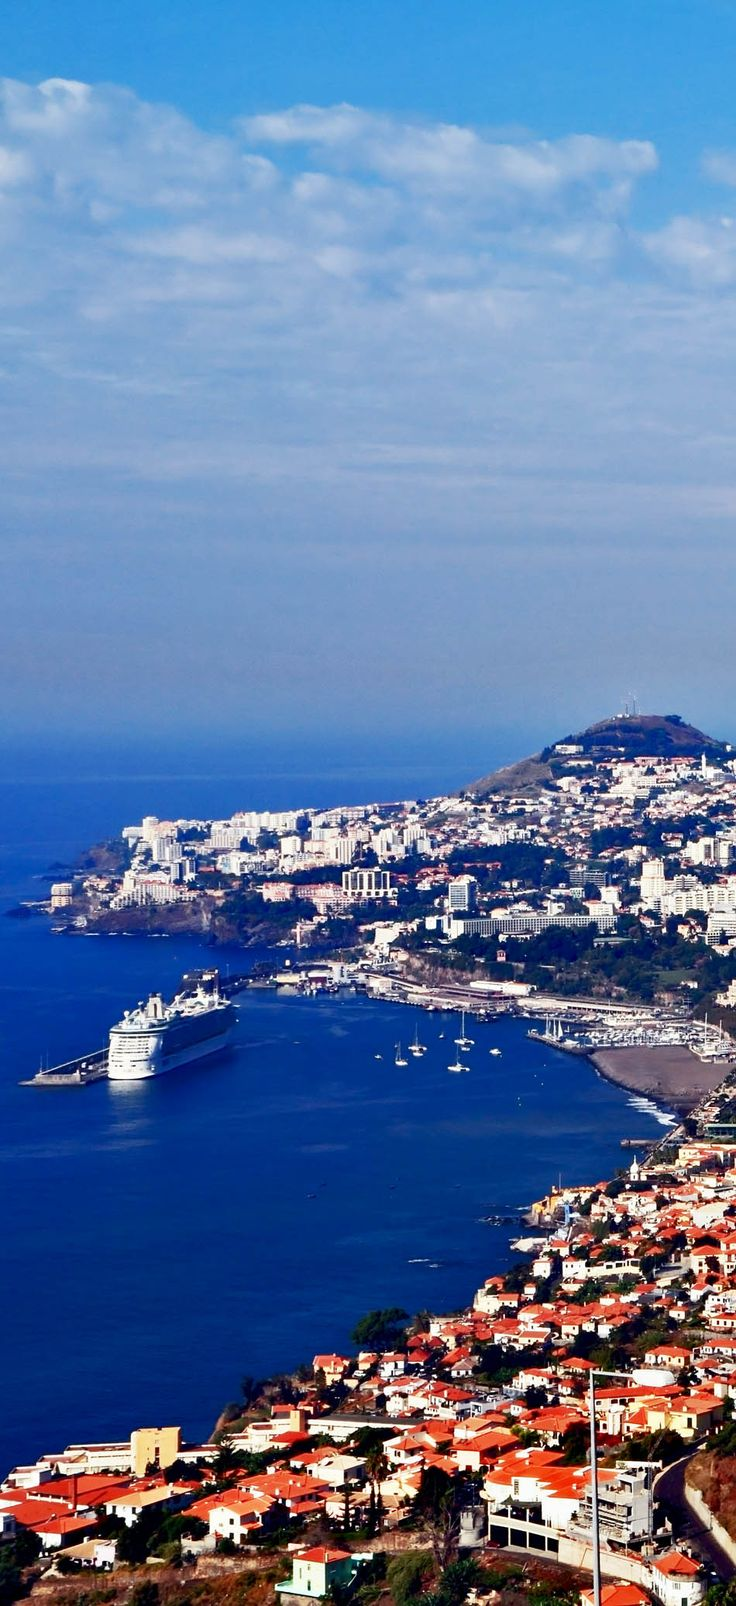 The capital of Madeira Island - Funchal city, Portugal